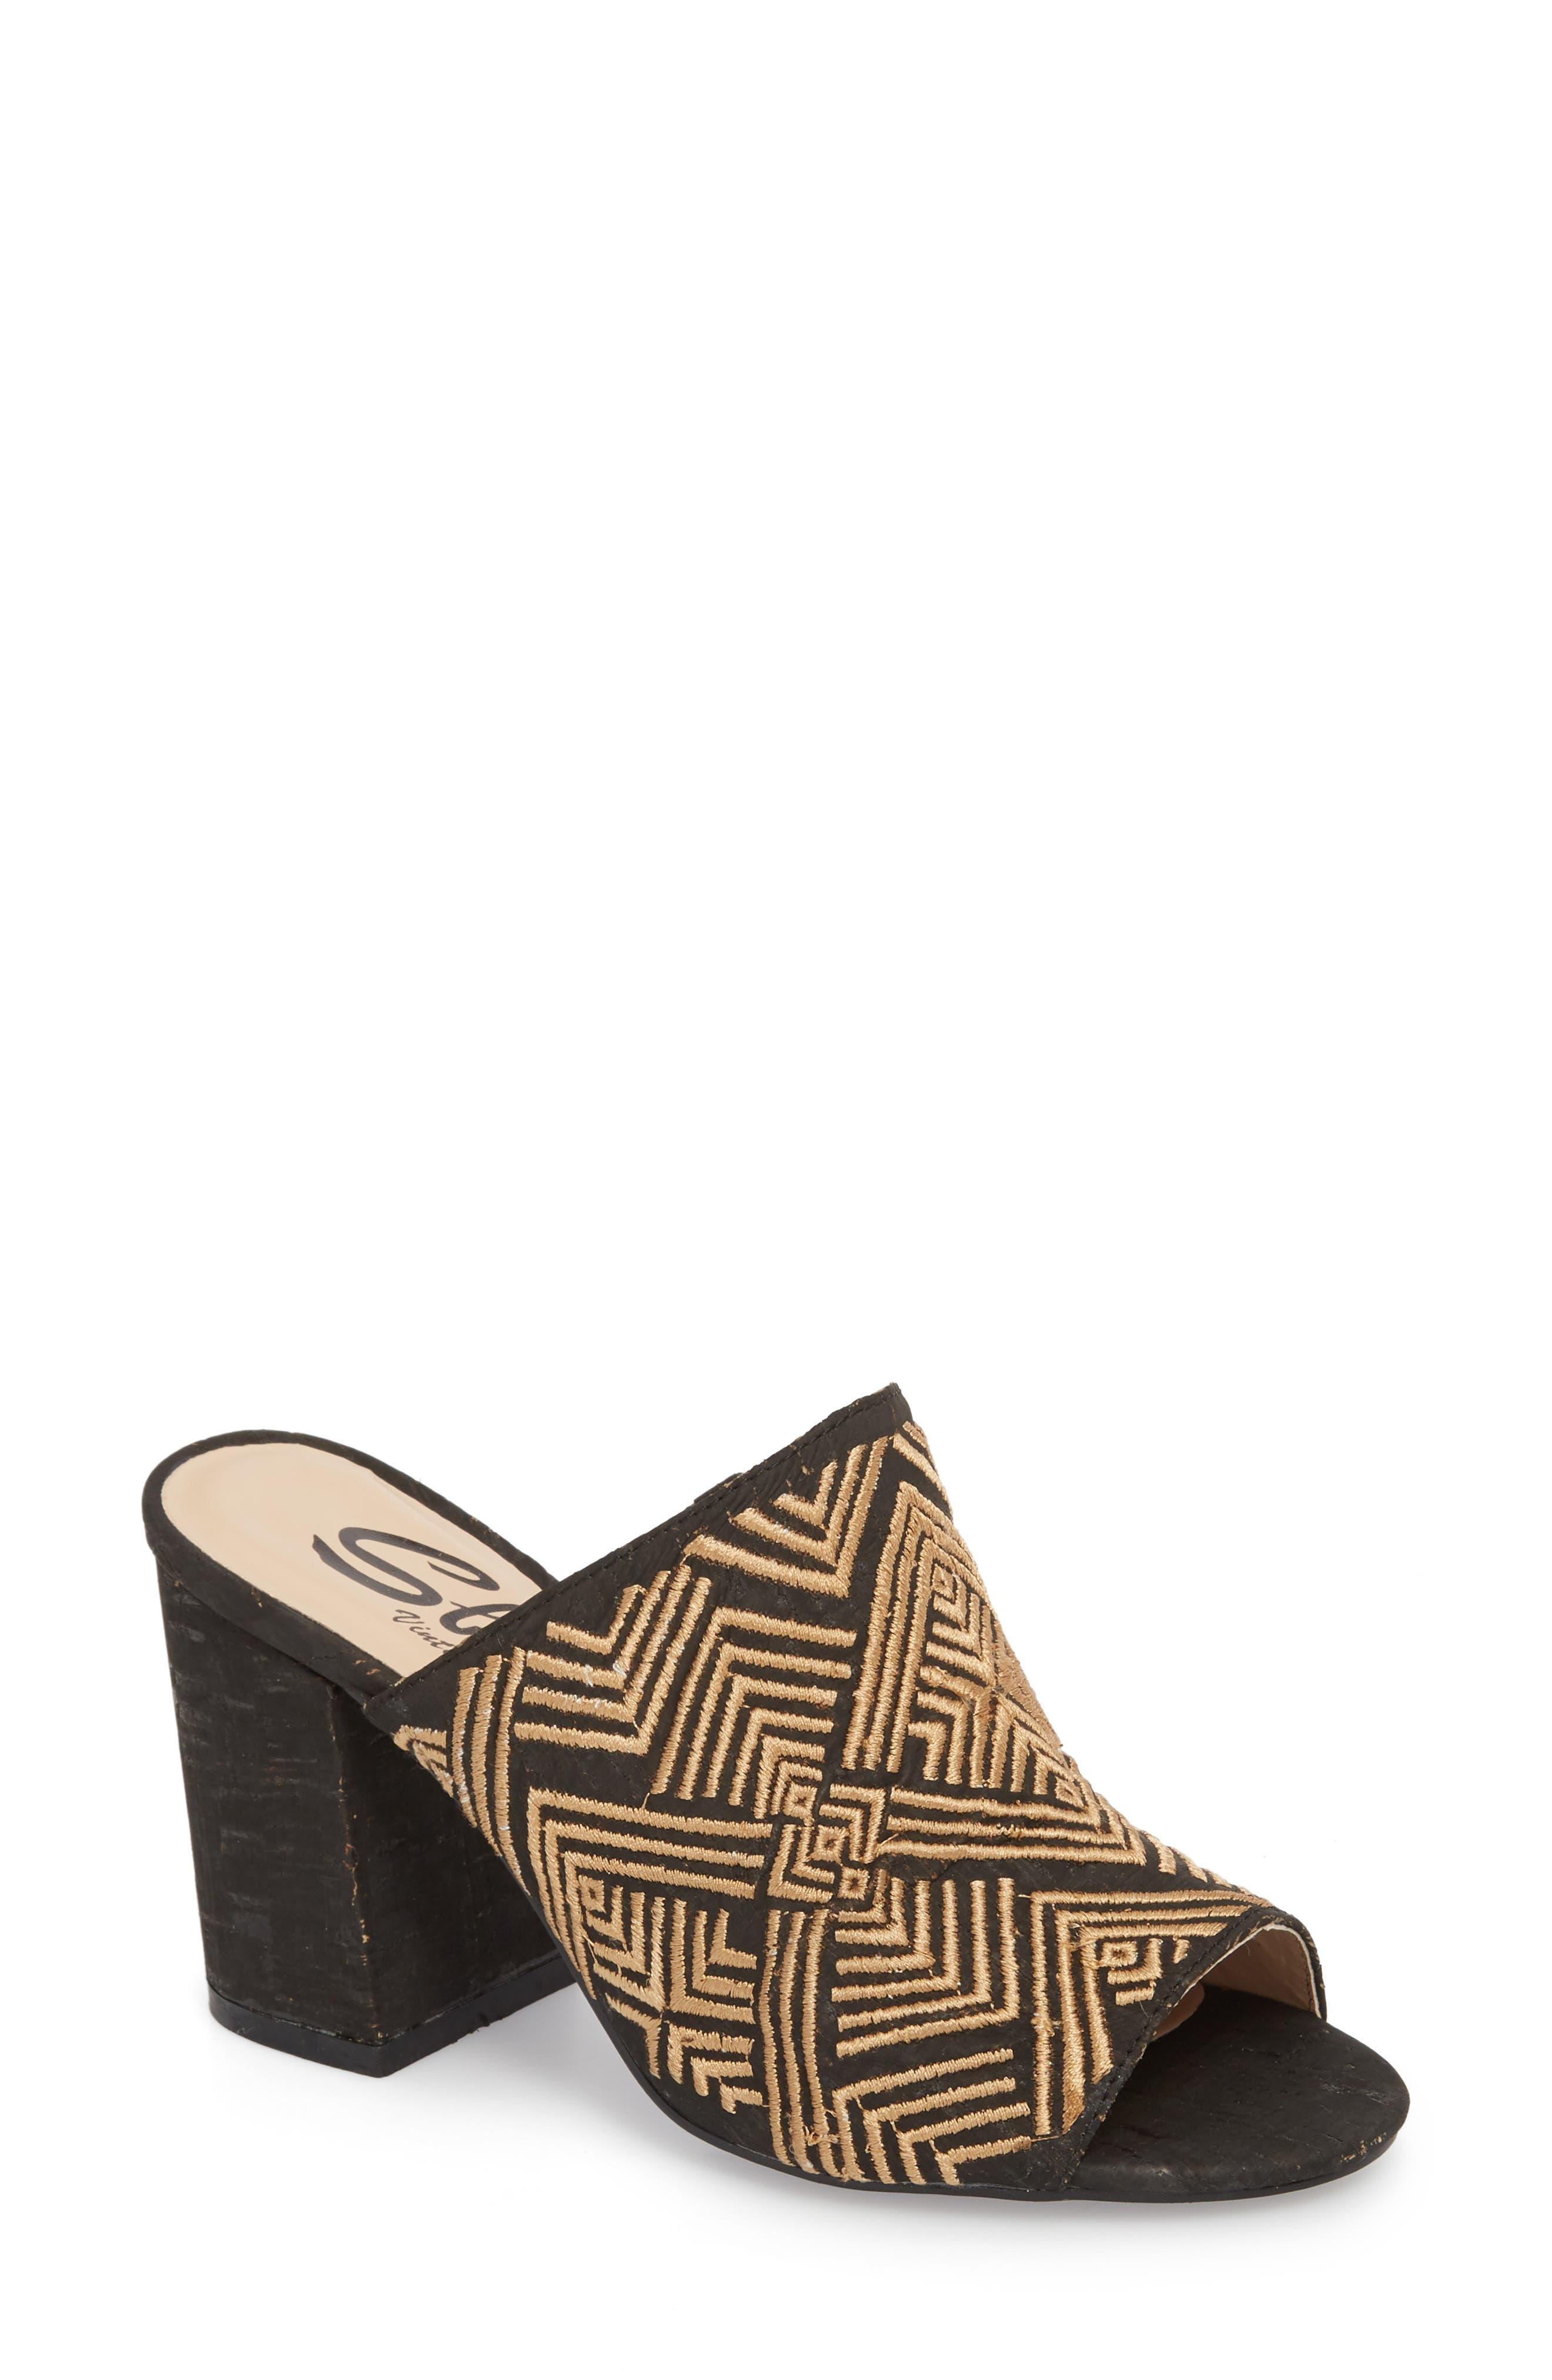 SBICCA Tania Mule, Main, color, BLACK